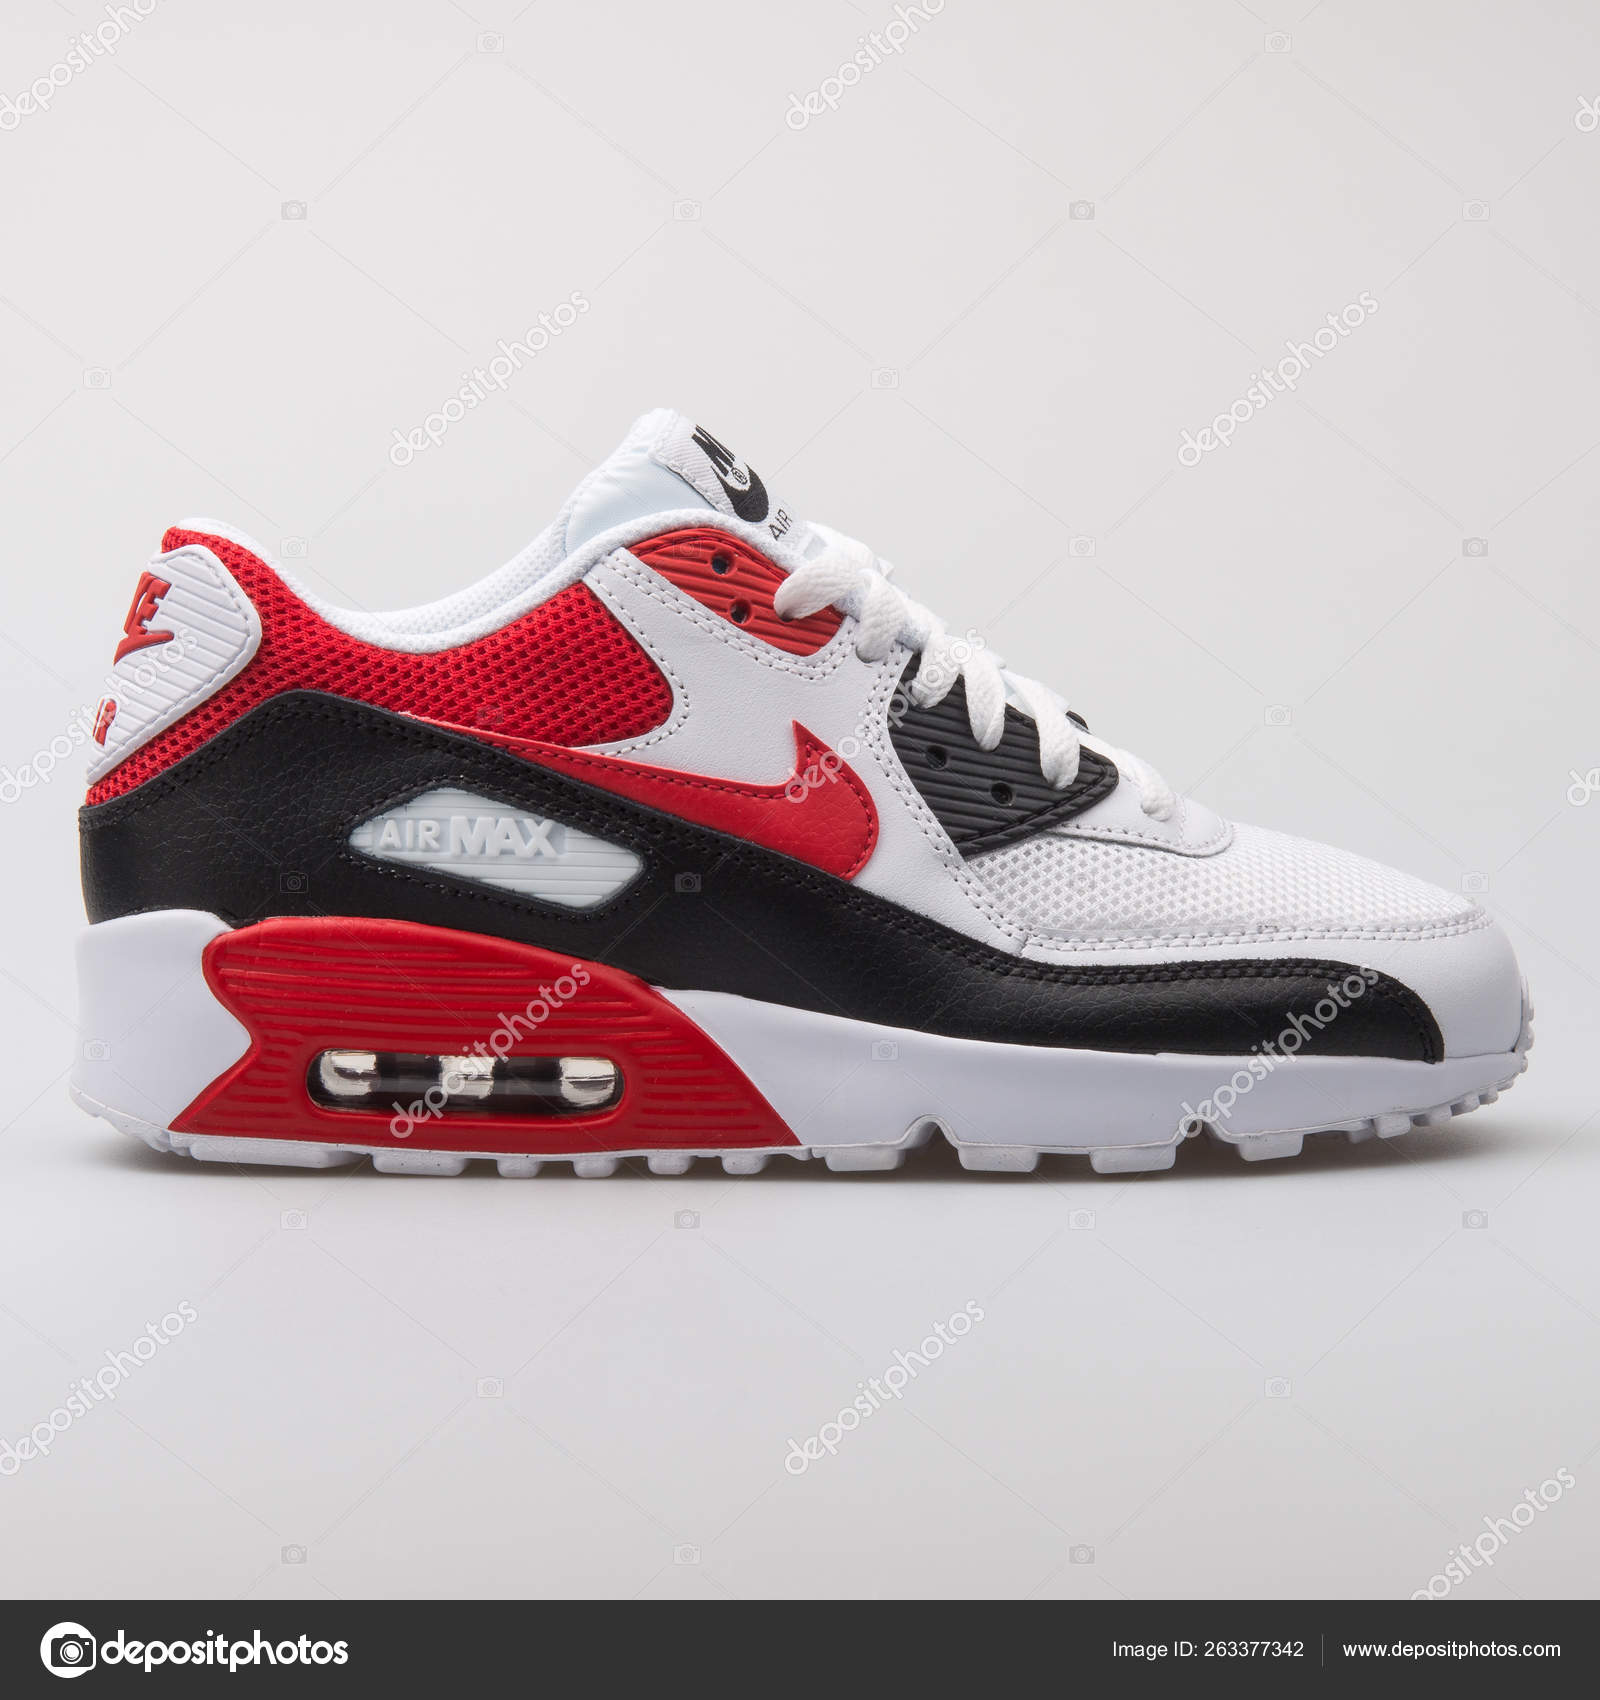 2f33f9f9 Nike Air Max 90 Mesh white, black and red sneaker — Foto editorial ...